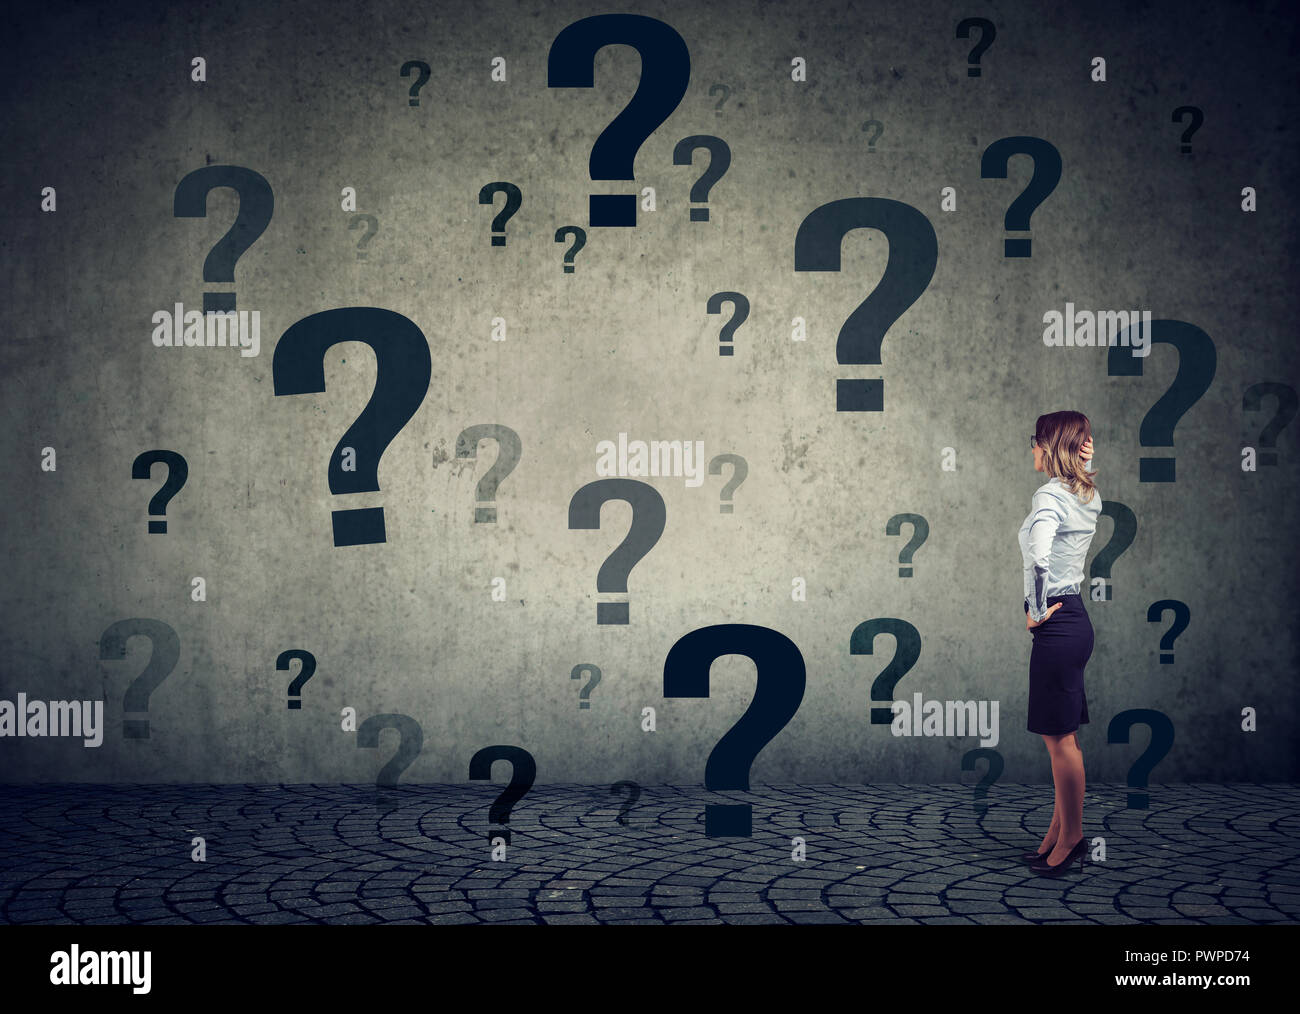 Rear view of young business woman with hand on head standing in front of a wall with many questions wondering what to do next. Businesswoman facing ch - Stock Image